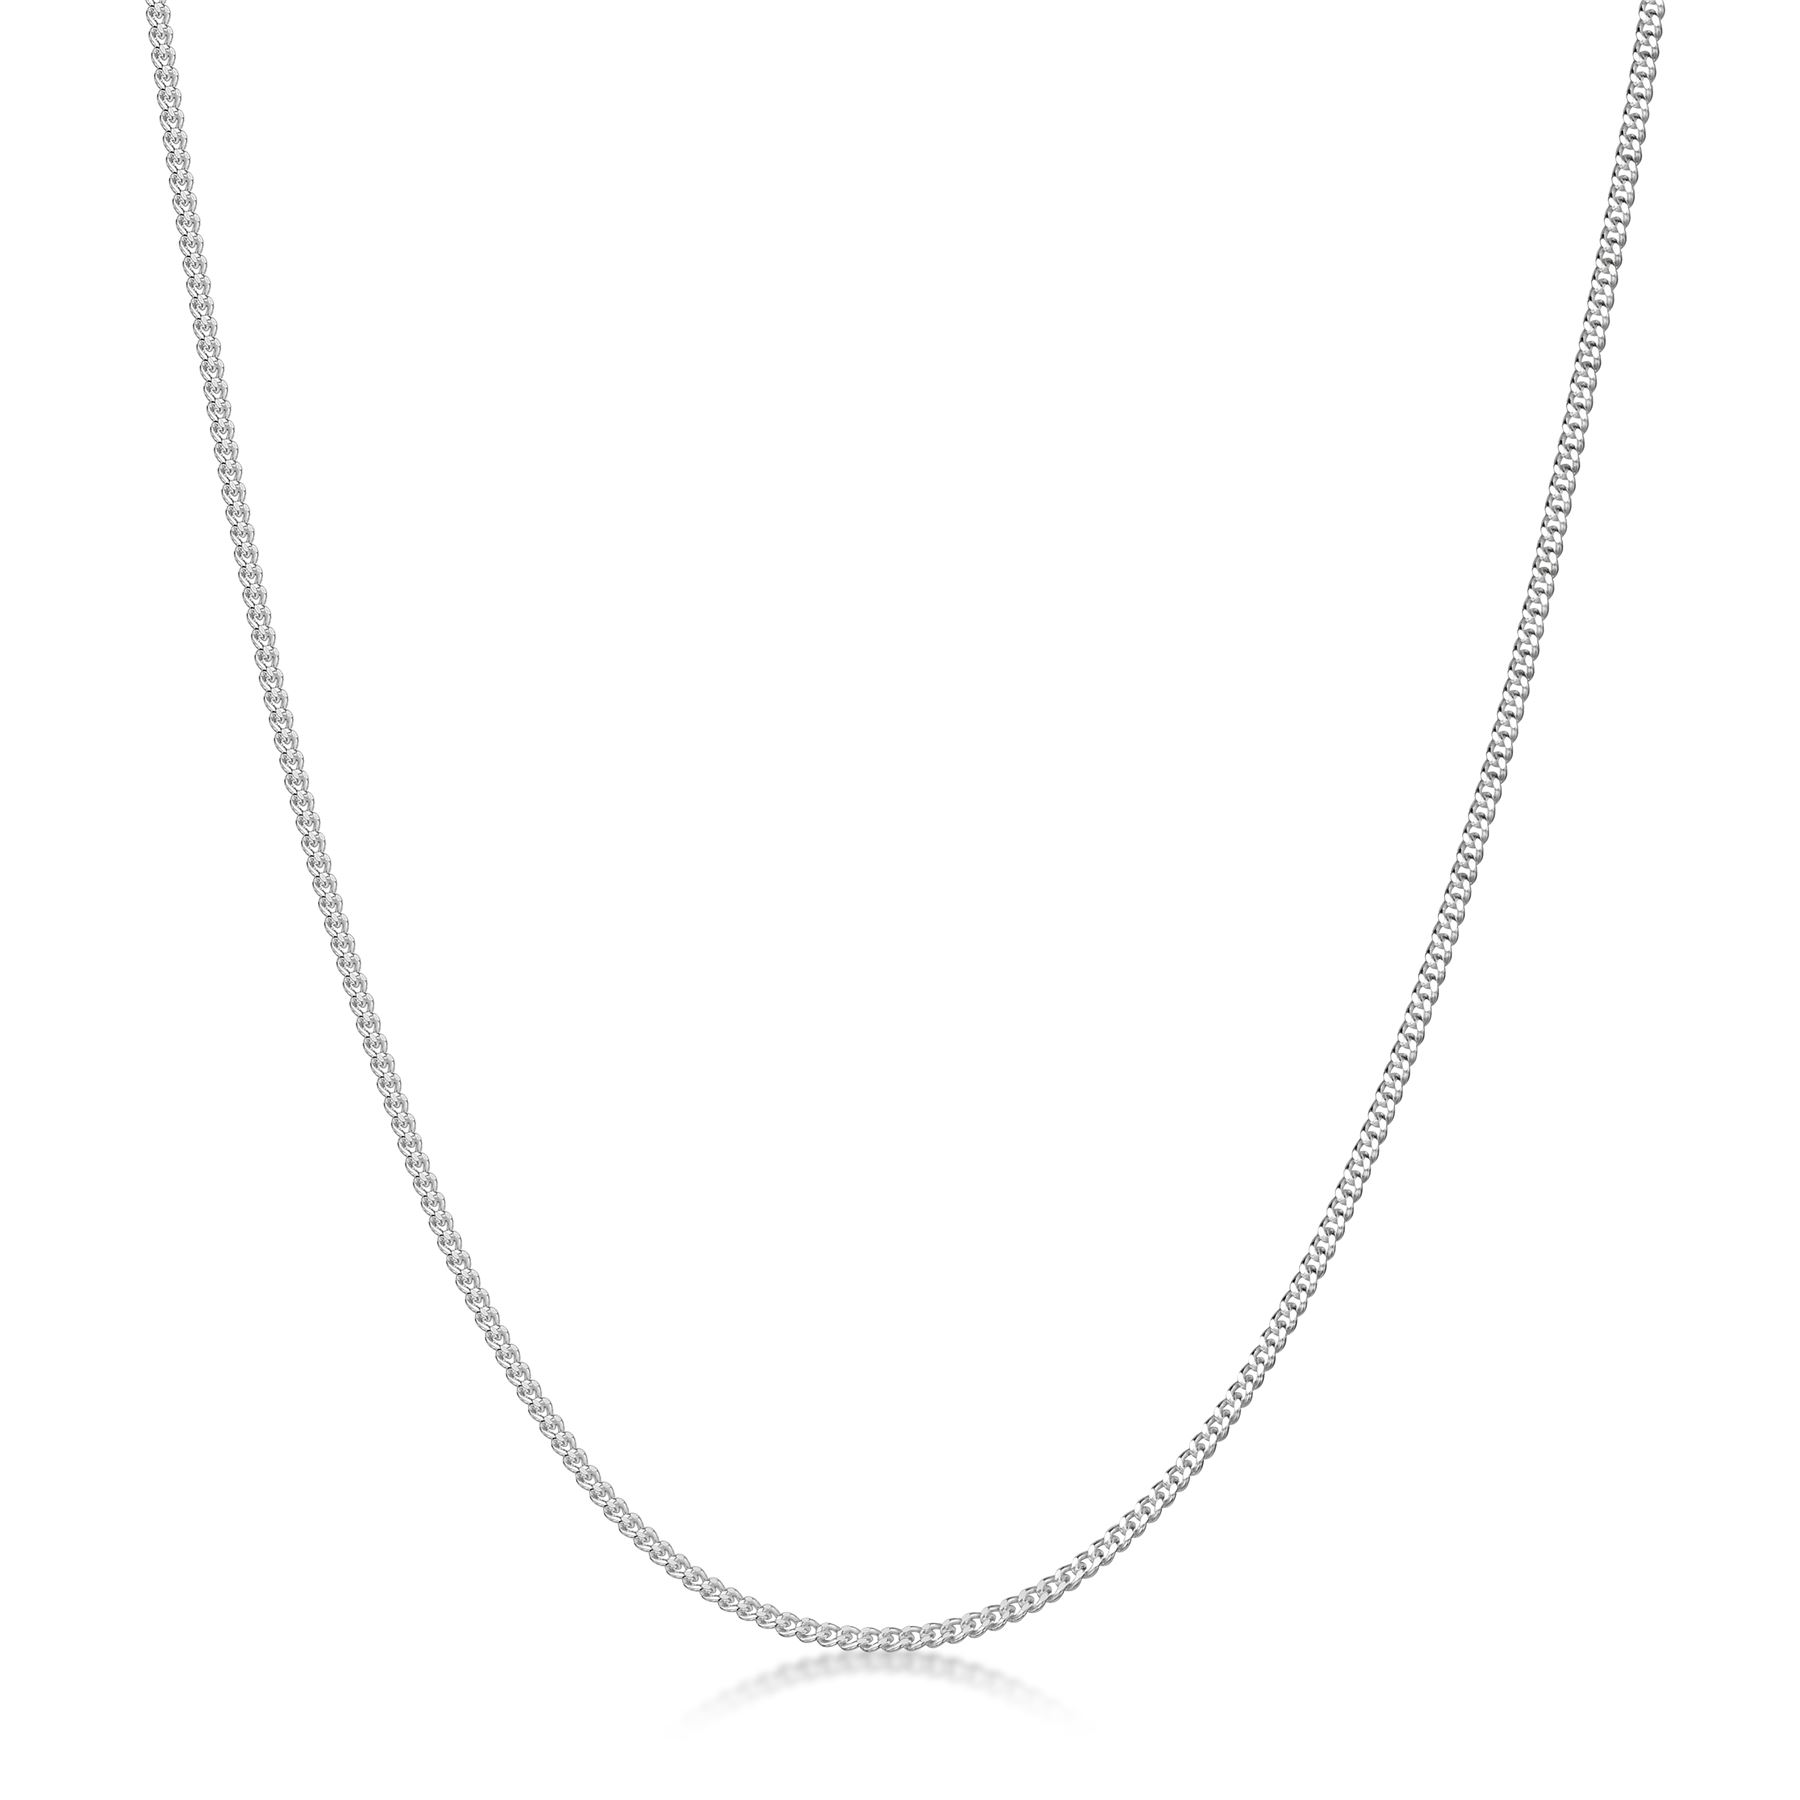 Amberta-Genuine-Real-925-Sterling-Silver-Long-Curb-Necklace-Chain-Made-in-Italy thumbnail 6